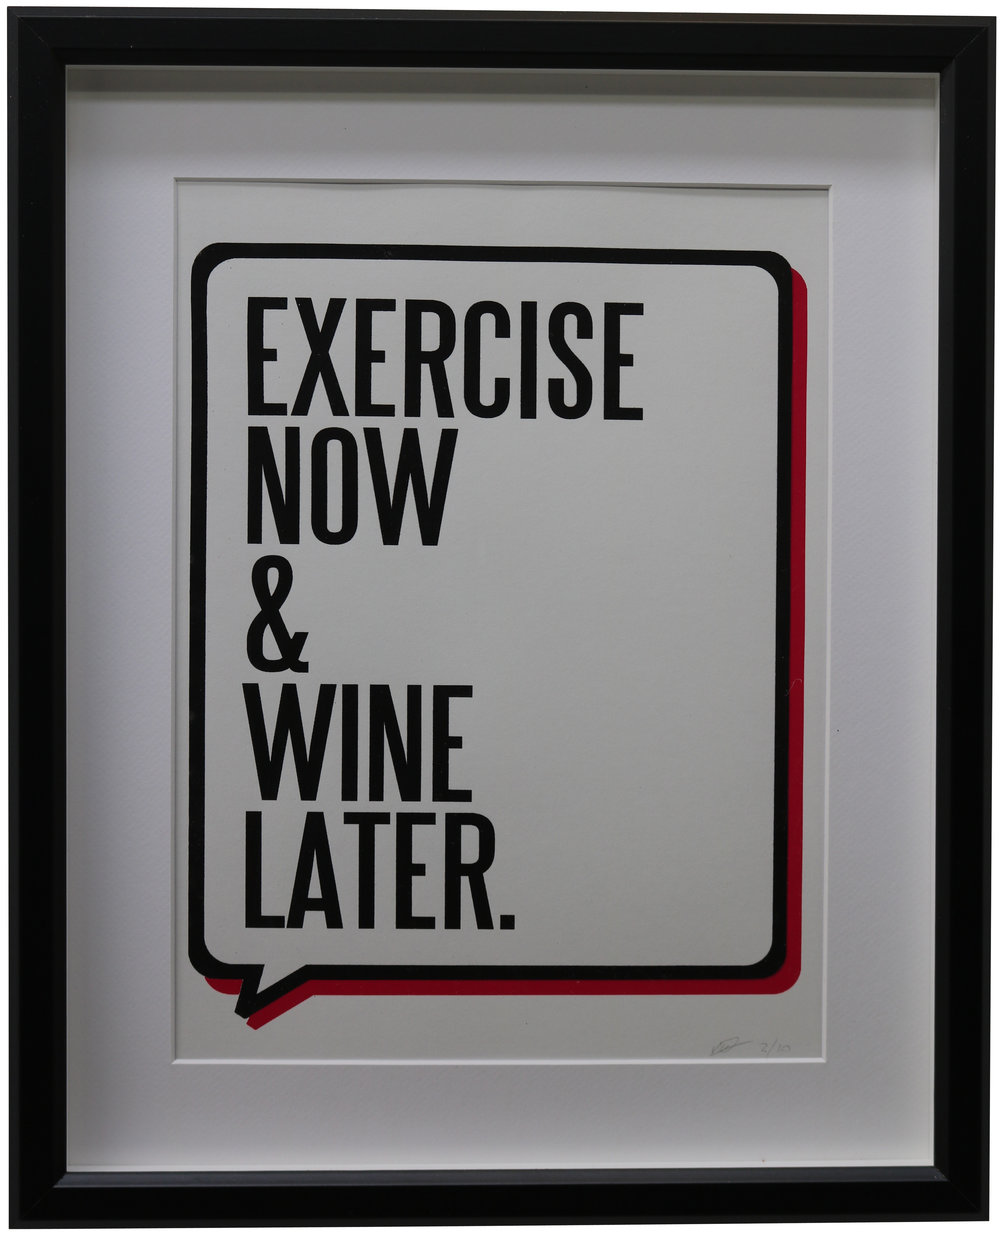 Wine Later